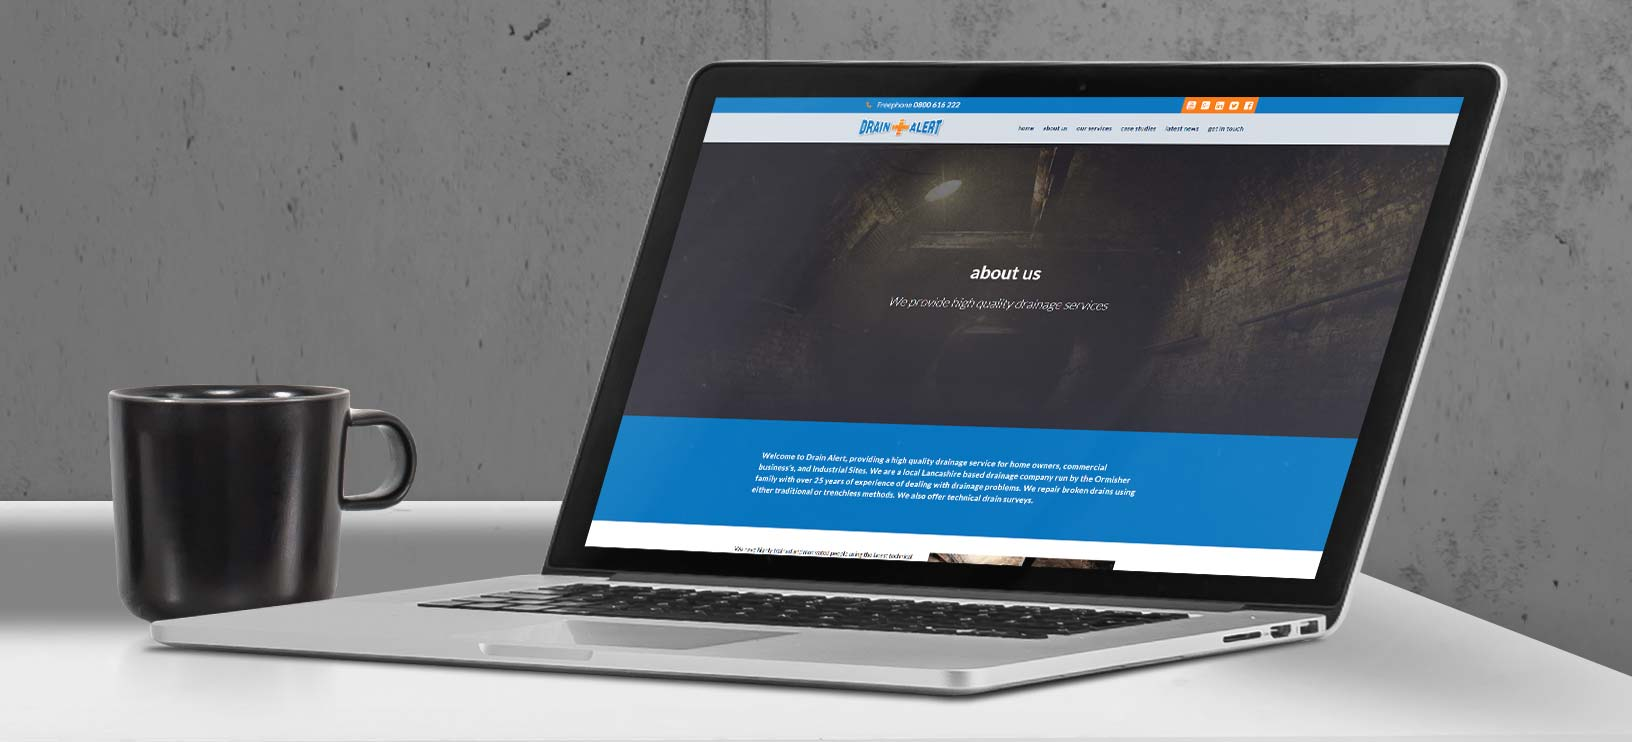 Drain Alert | Responsive Website Design